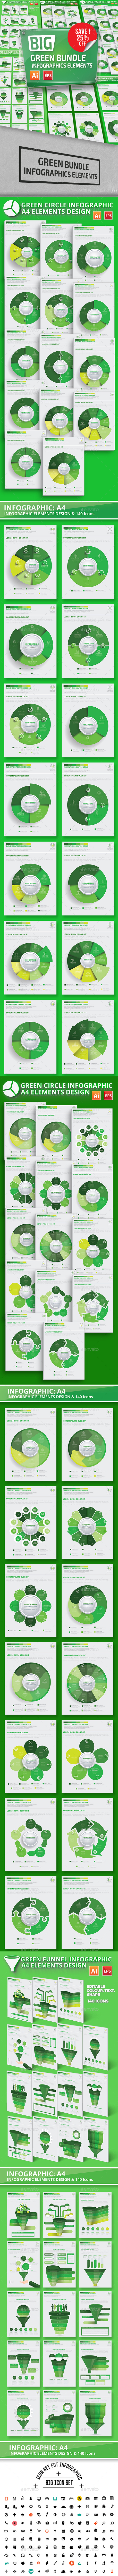 Bundle Green Infographic Elements - Infographics